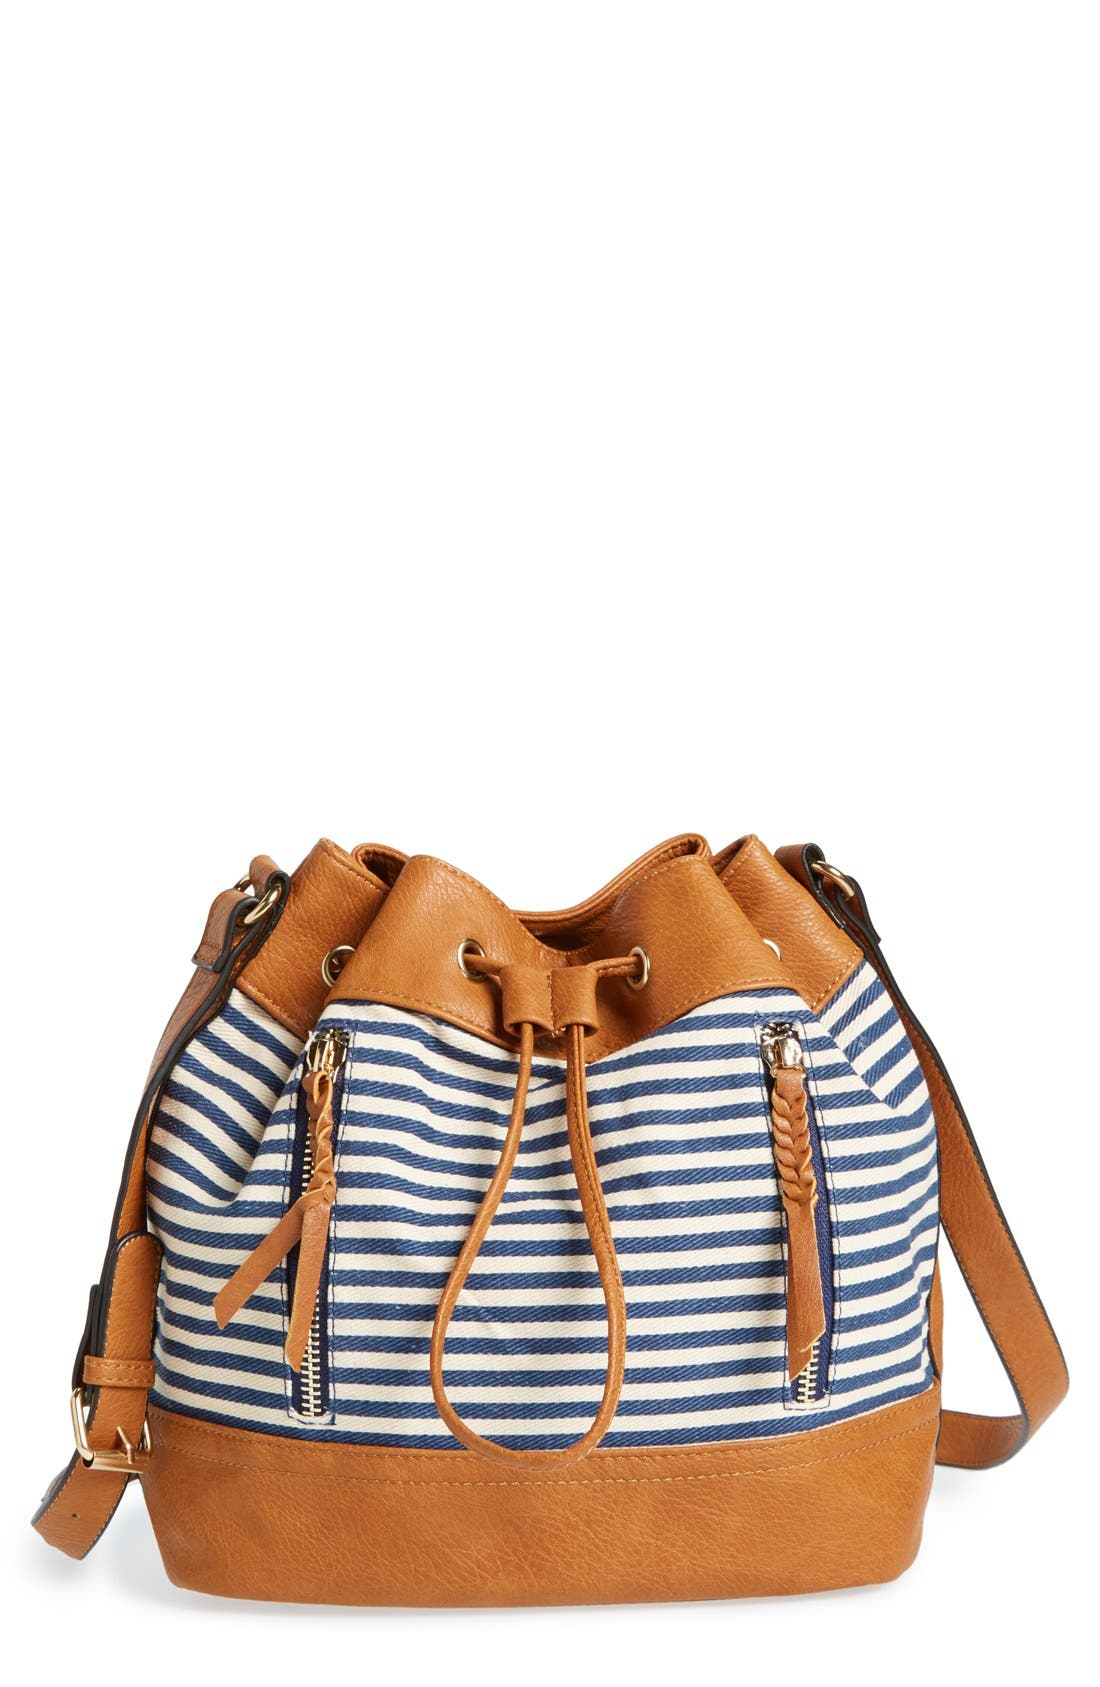 Alternate Image 1 Selected - Sole Society Stripe Canvas Mini Bucket Bag